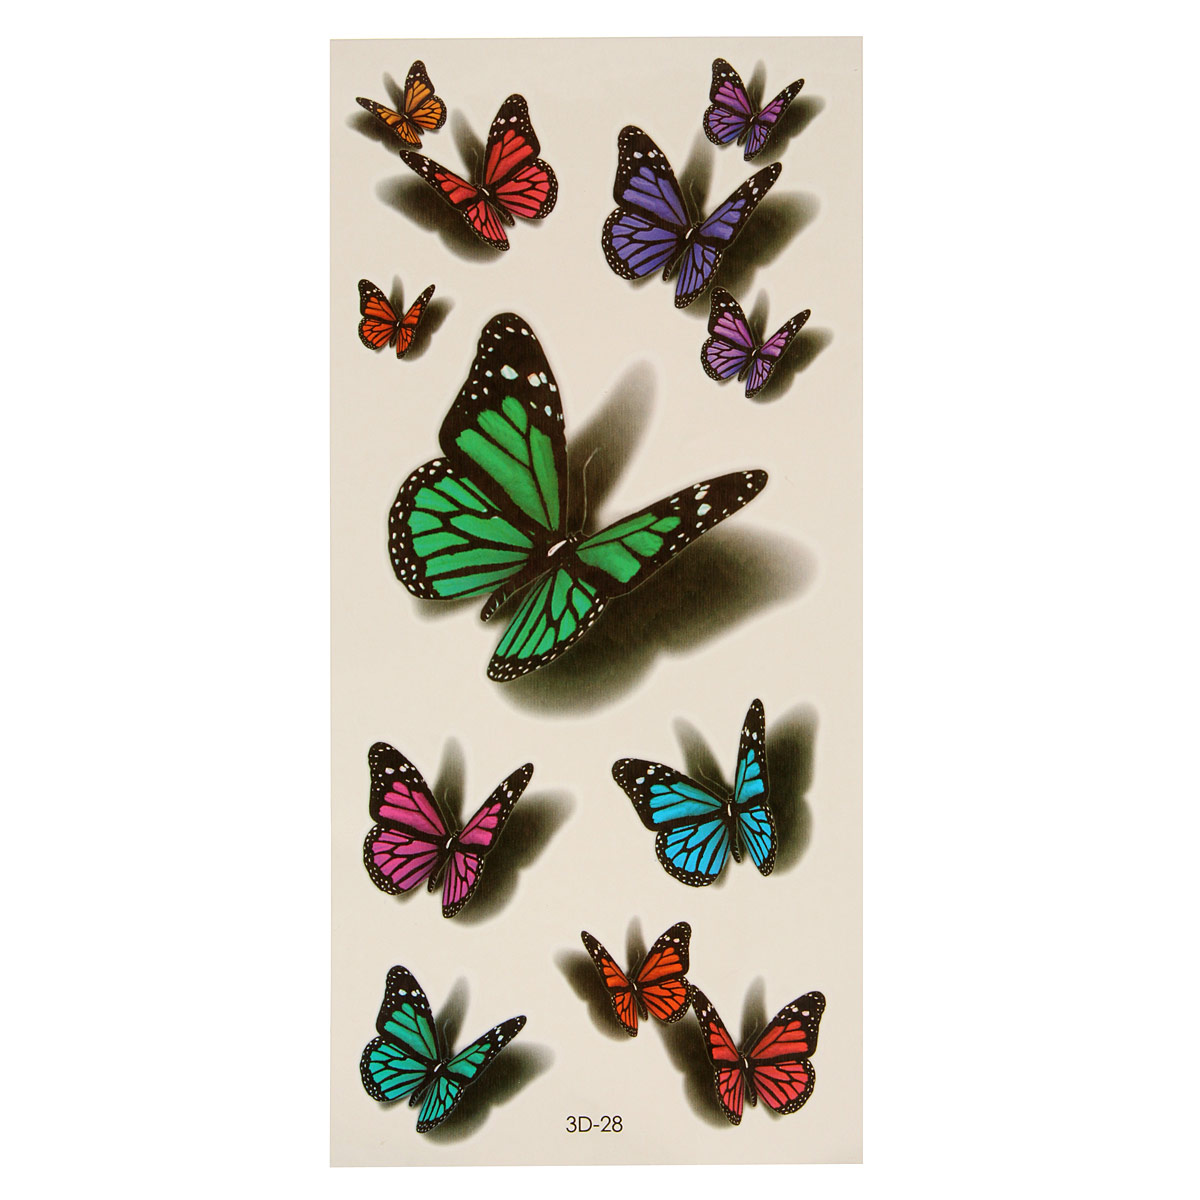 3D Butterfly Flying Design Temporary Tattoo Sticker Dec